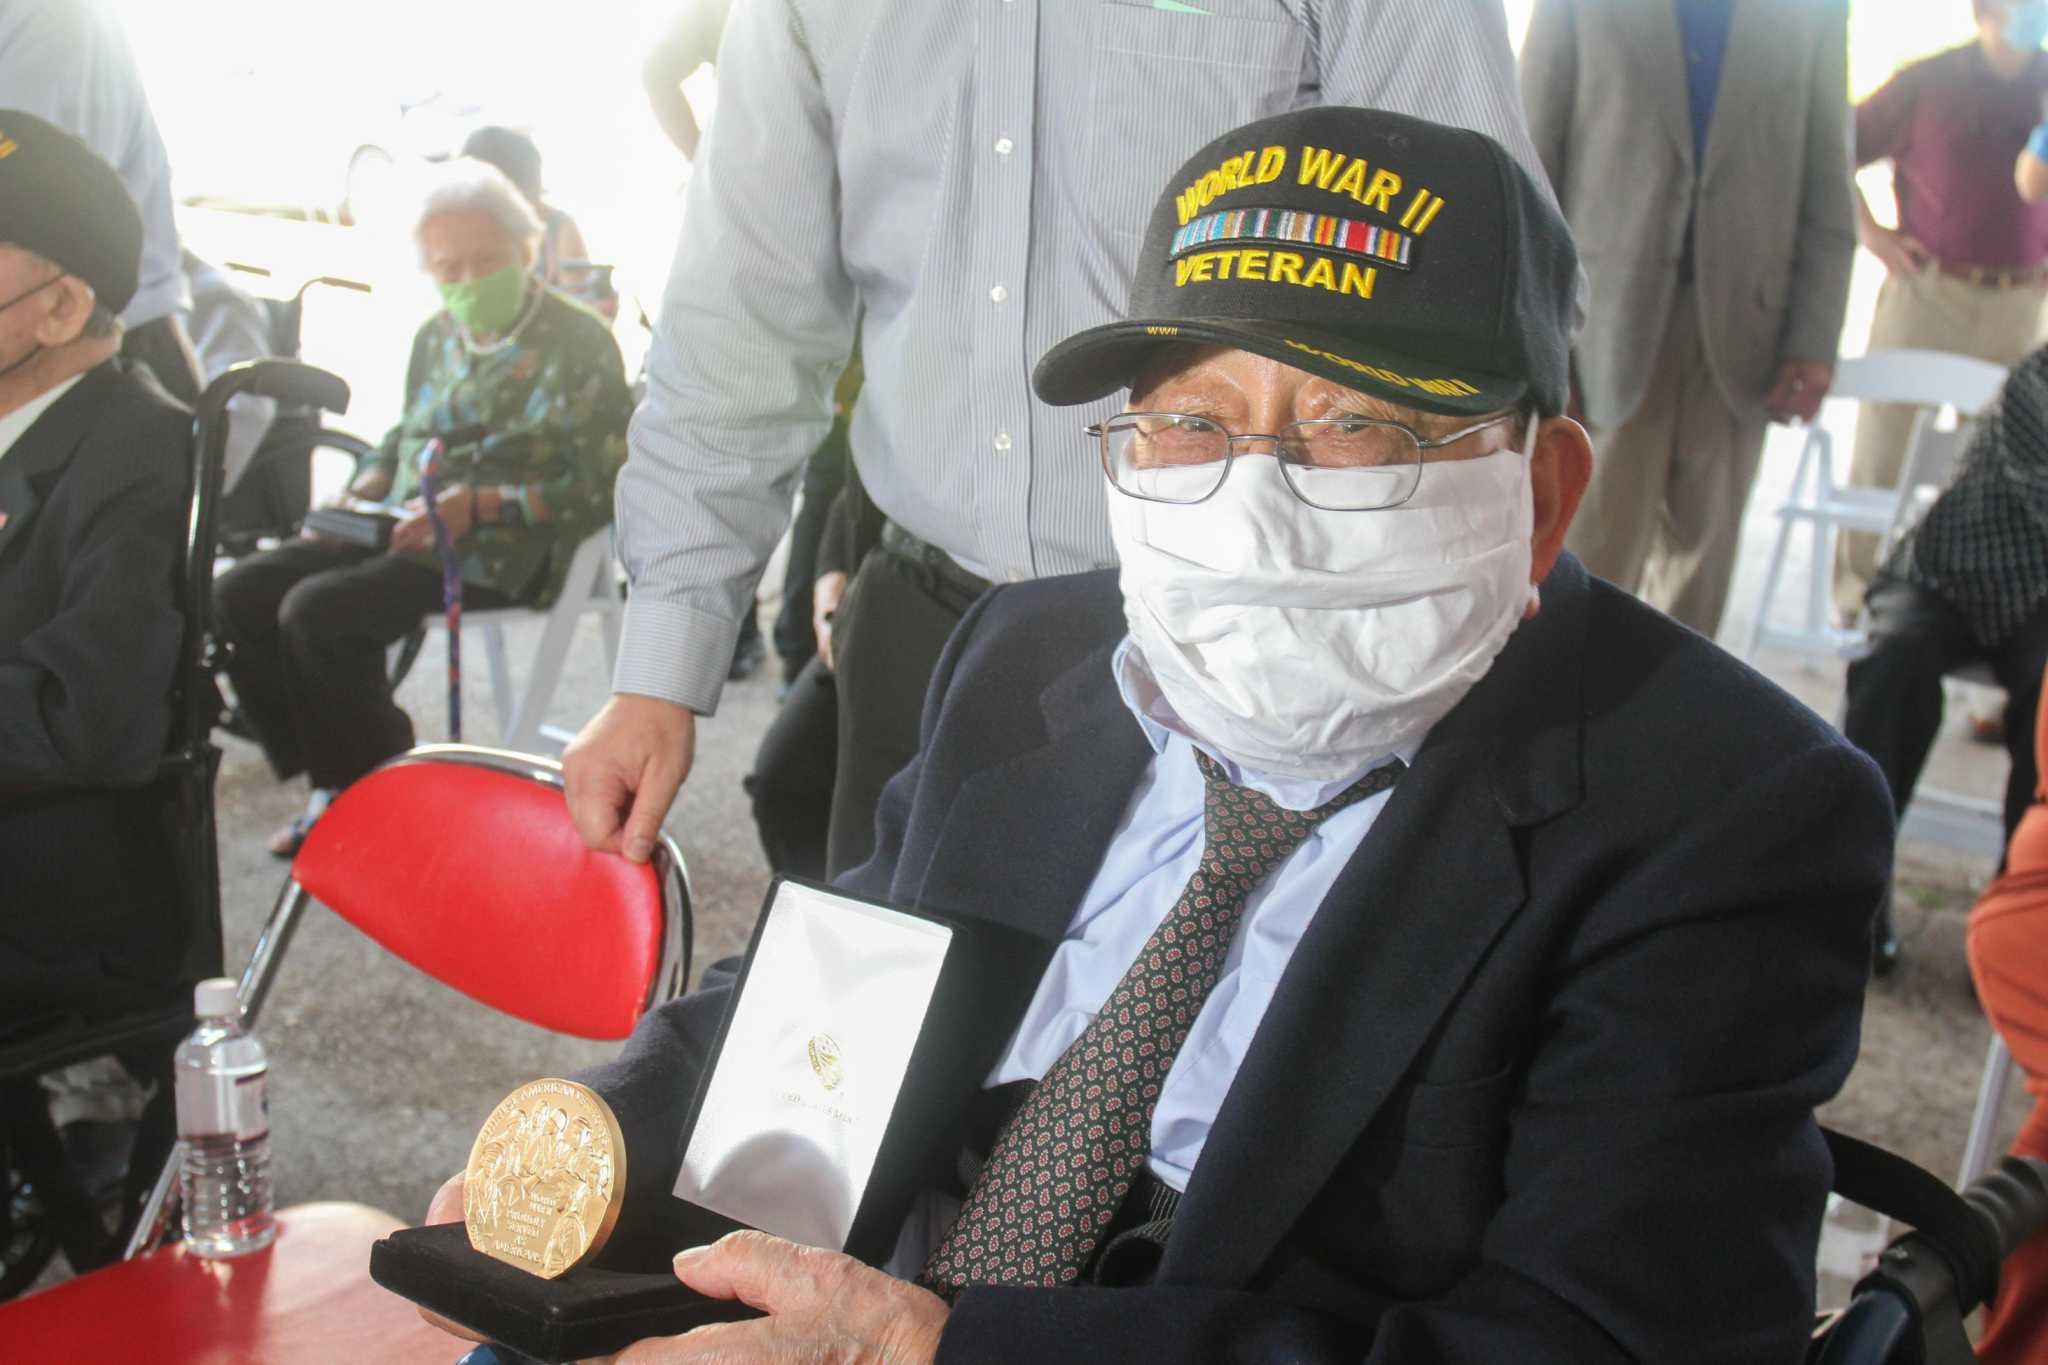 www.houstonchronicle.com: Houston honors service of Chinese Americans in WWII